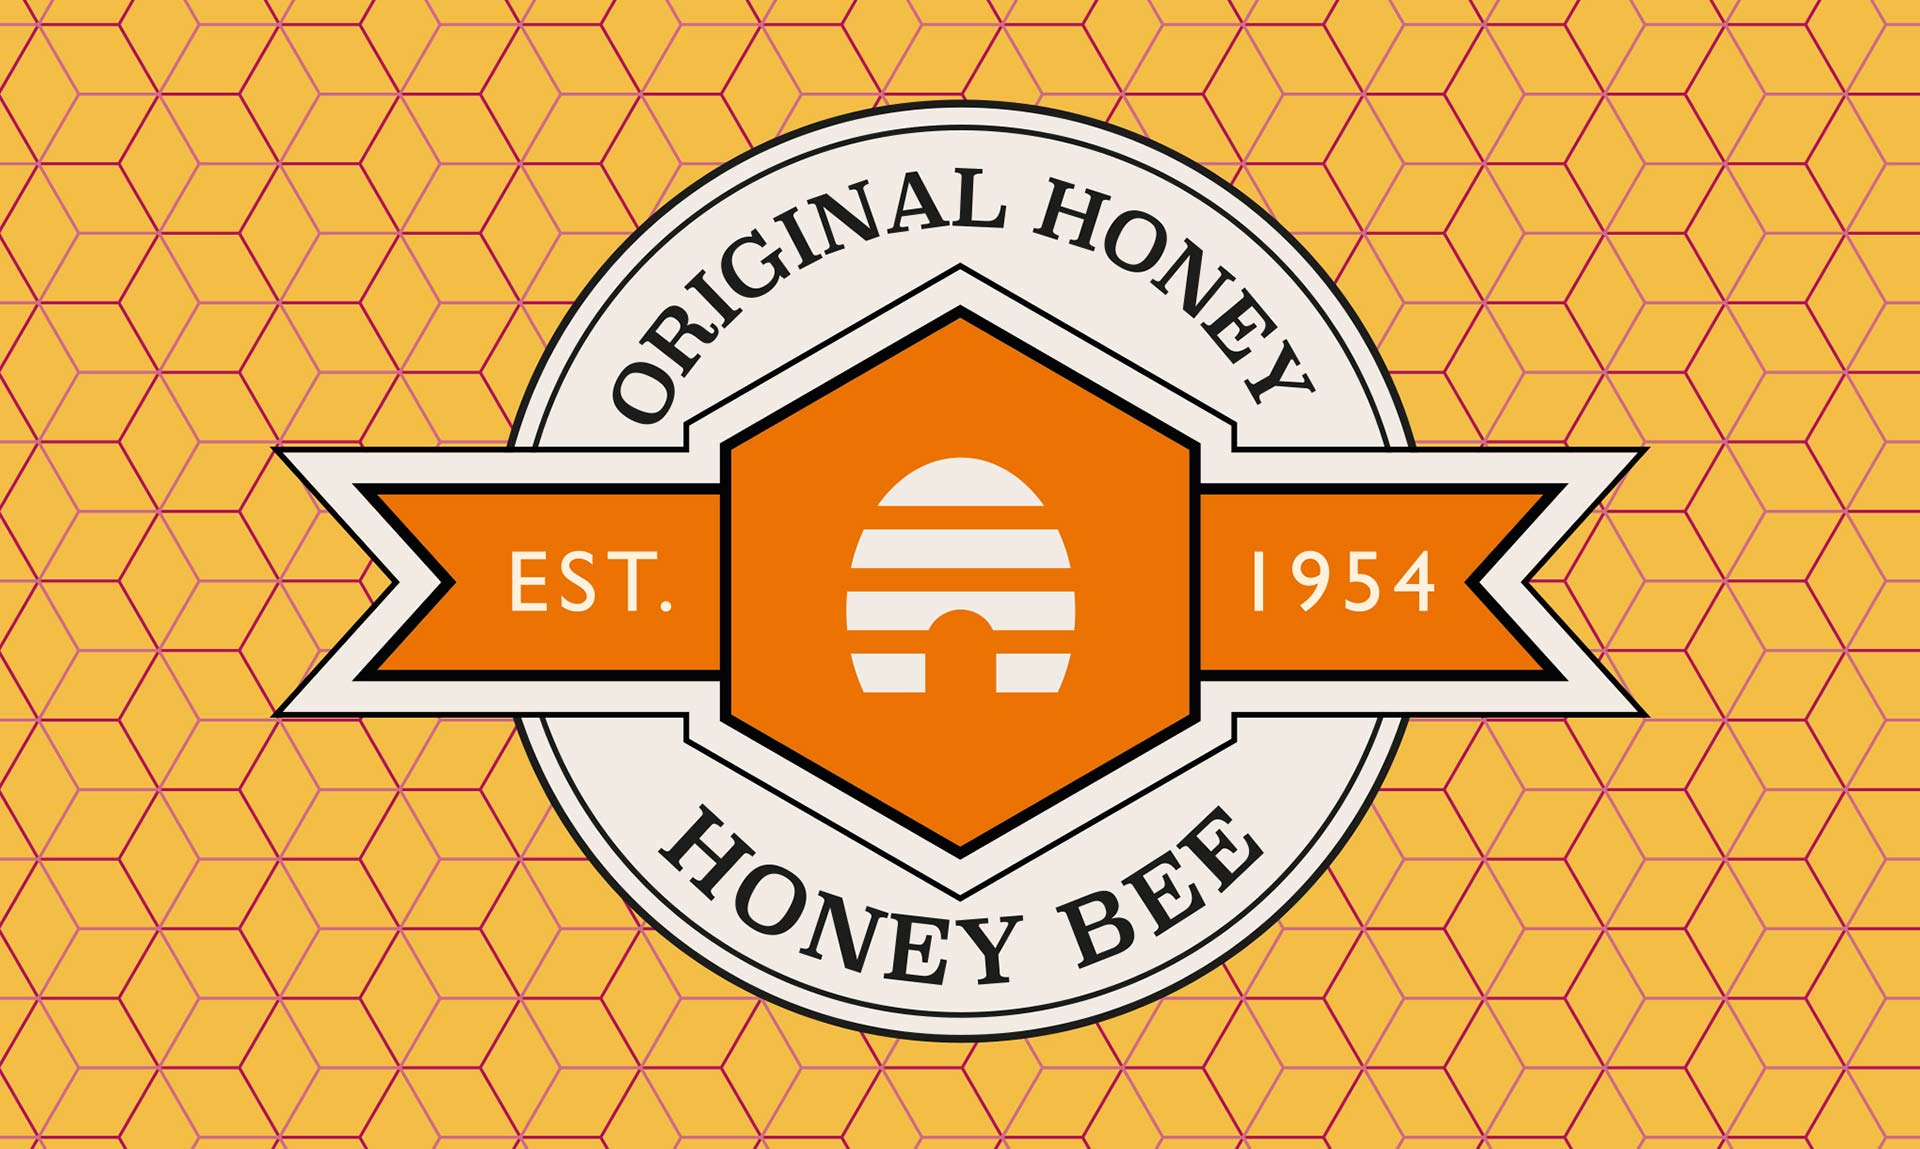 Brand logo for Nulon Honey Bee. Packaging design company - Flipflop Design